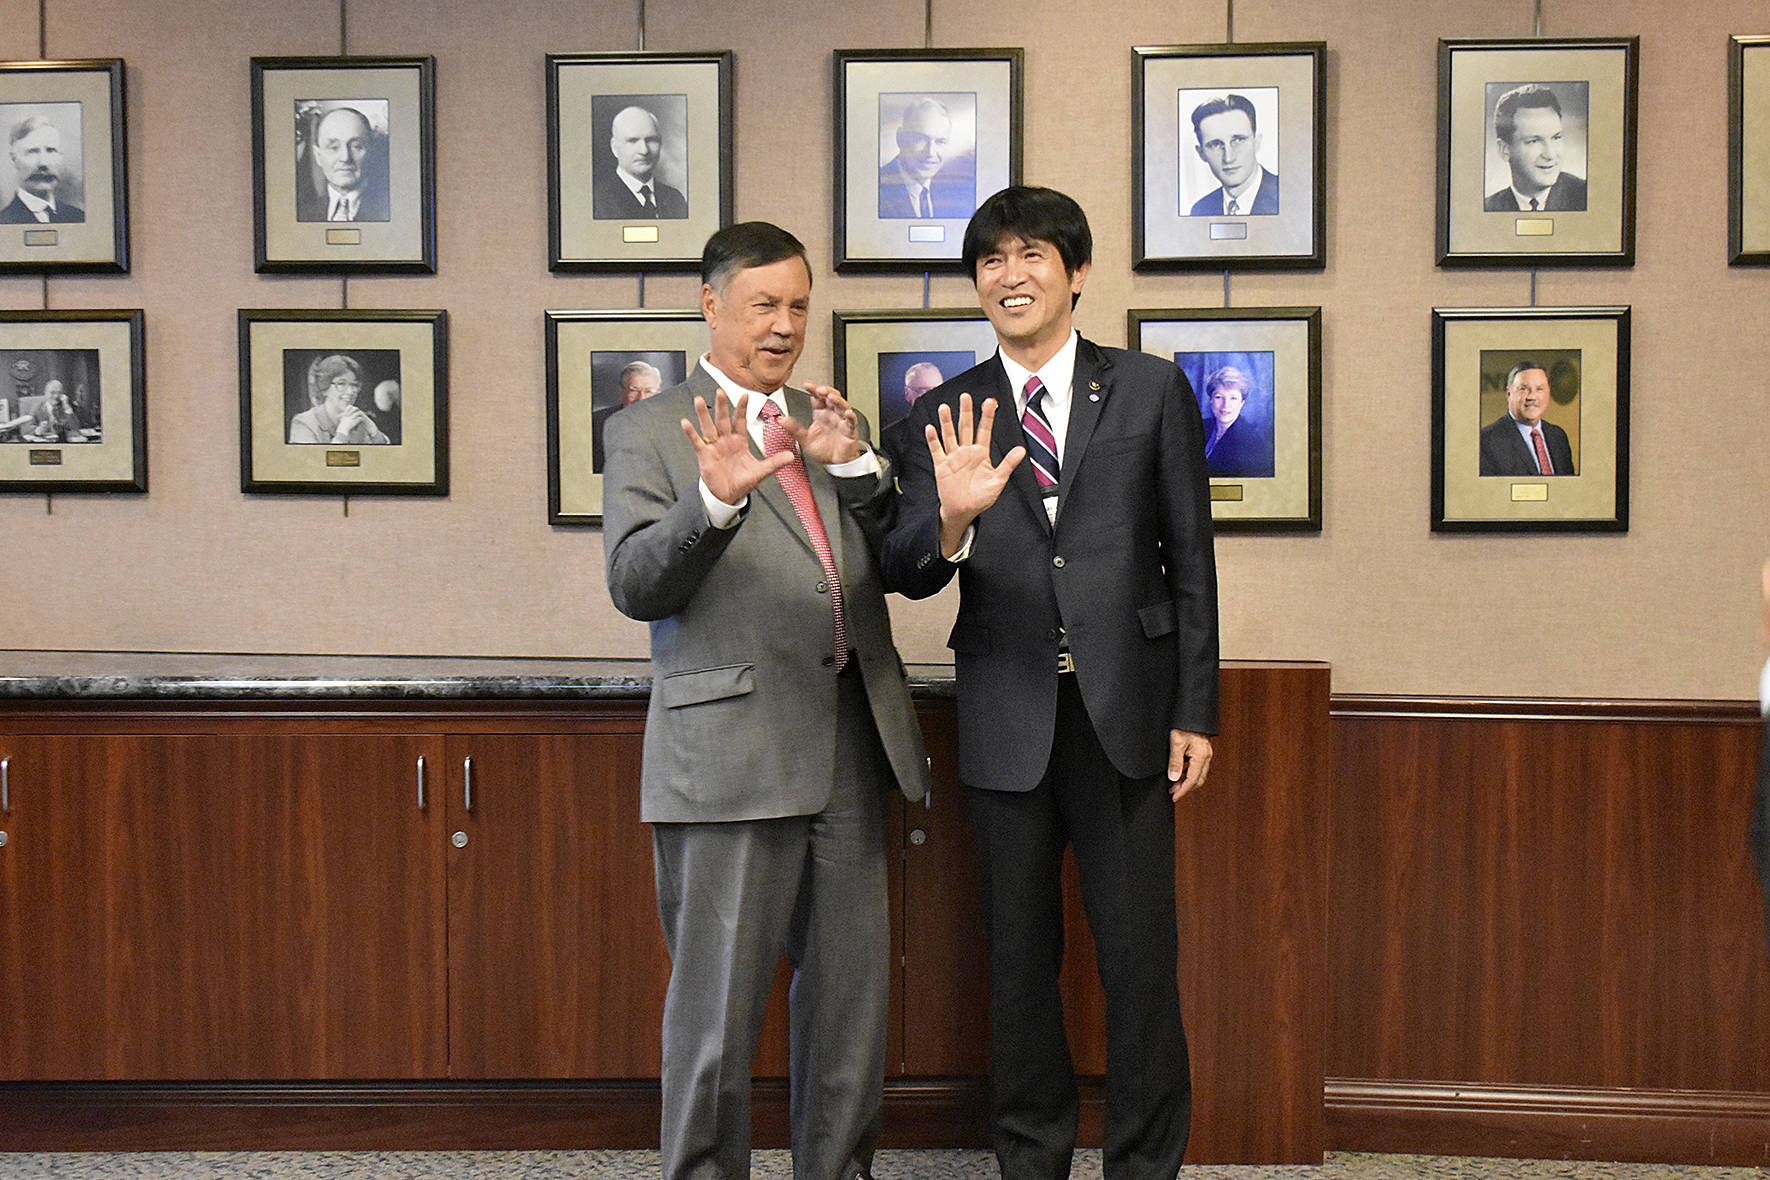 Photo by Haley Ausbun. Mayor Denis Law and Mayor Shozo Katayama.